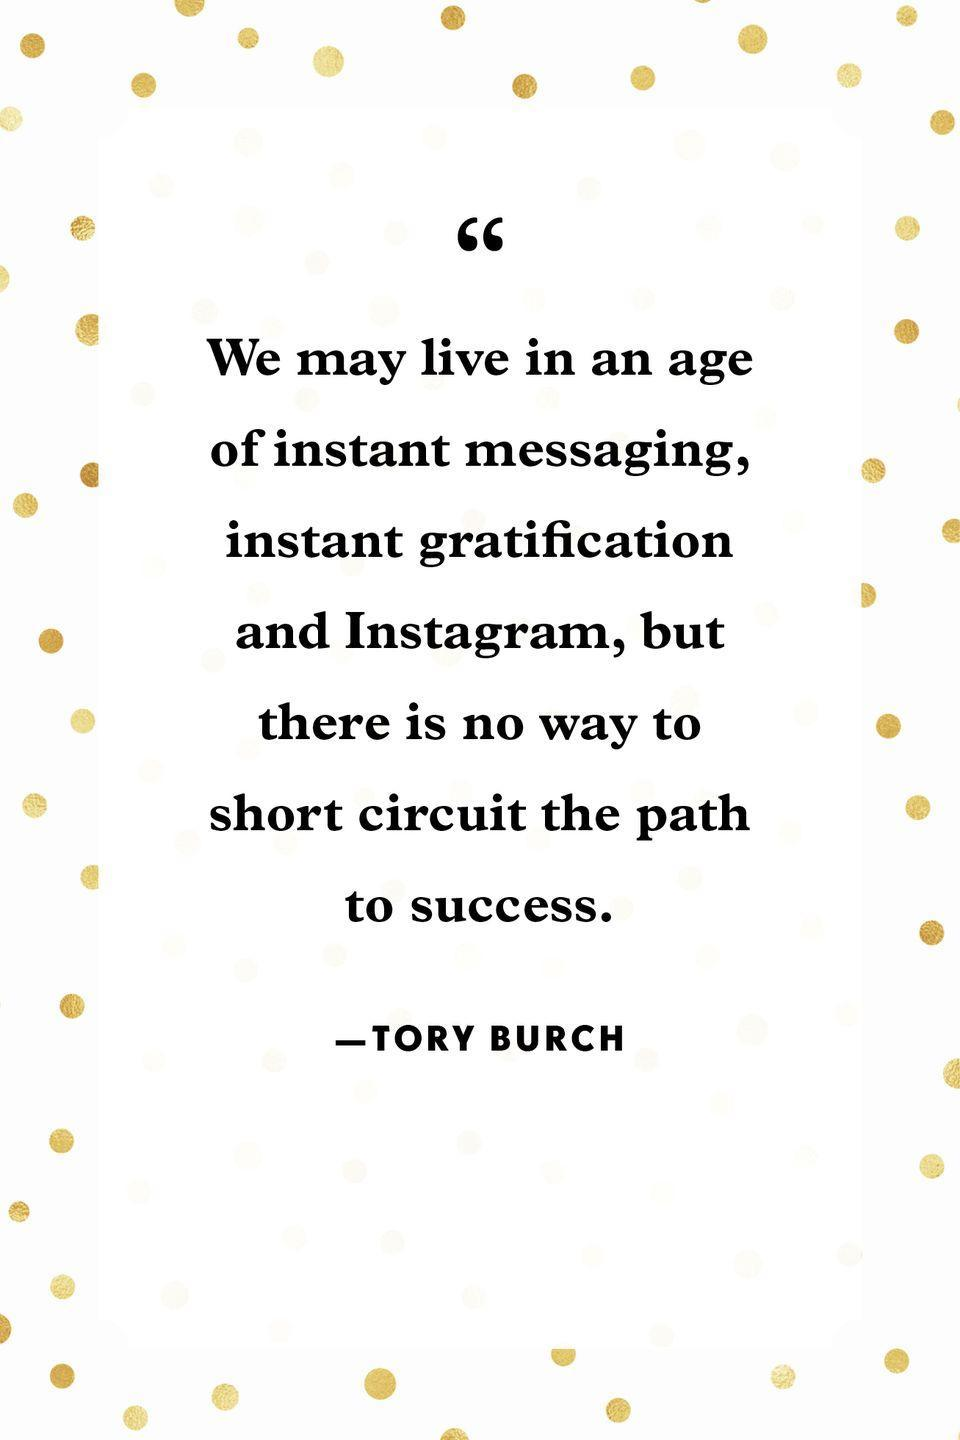 """<p>""""We may live in an age of instant messaging, instant gratification and Instagram, but there is no way to short circuit the path to success.""""</p>"""